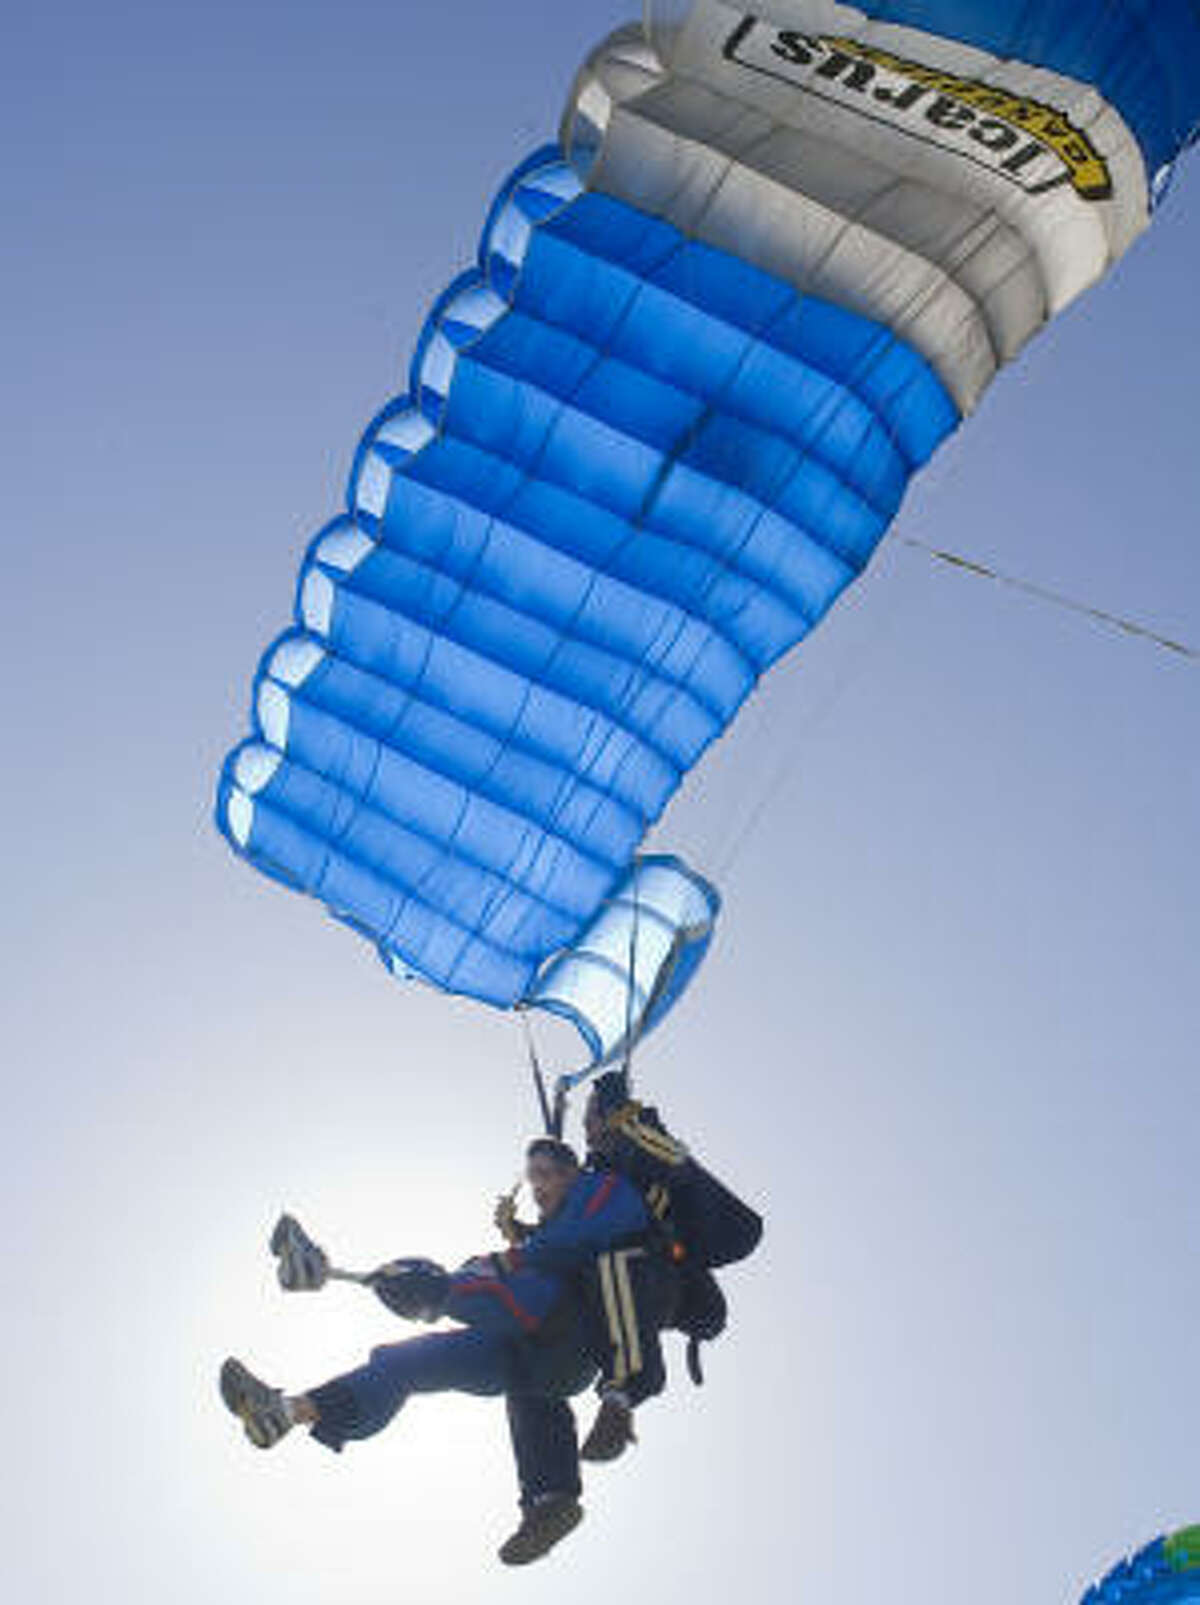 U.S. Army Sgt. John Botts (left) completes a tandem skydive with tadem instrutor Ben Morson (right) during the